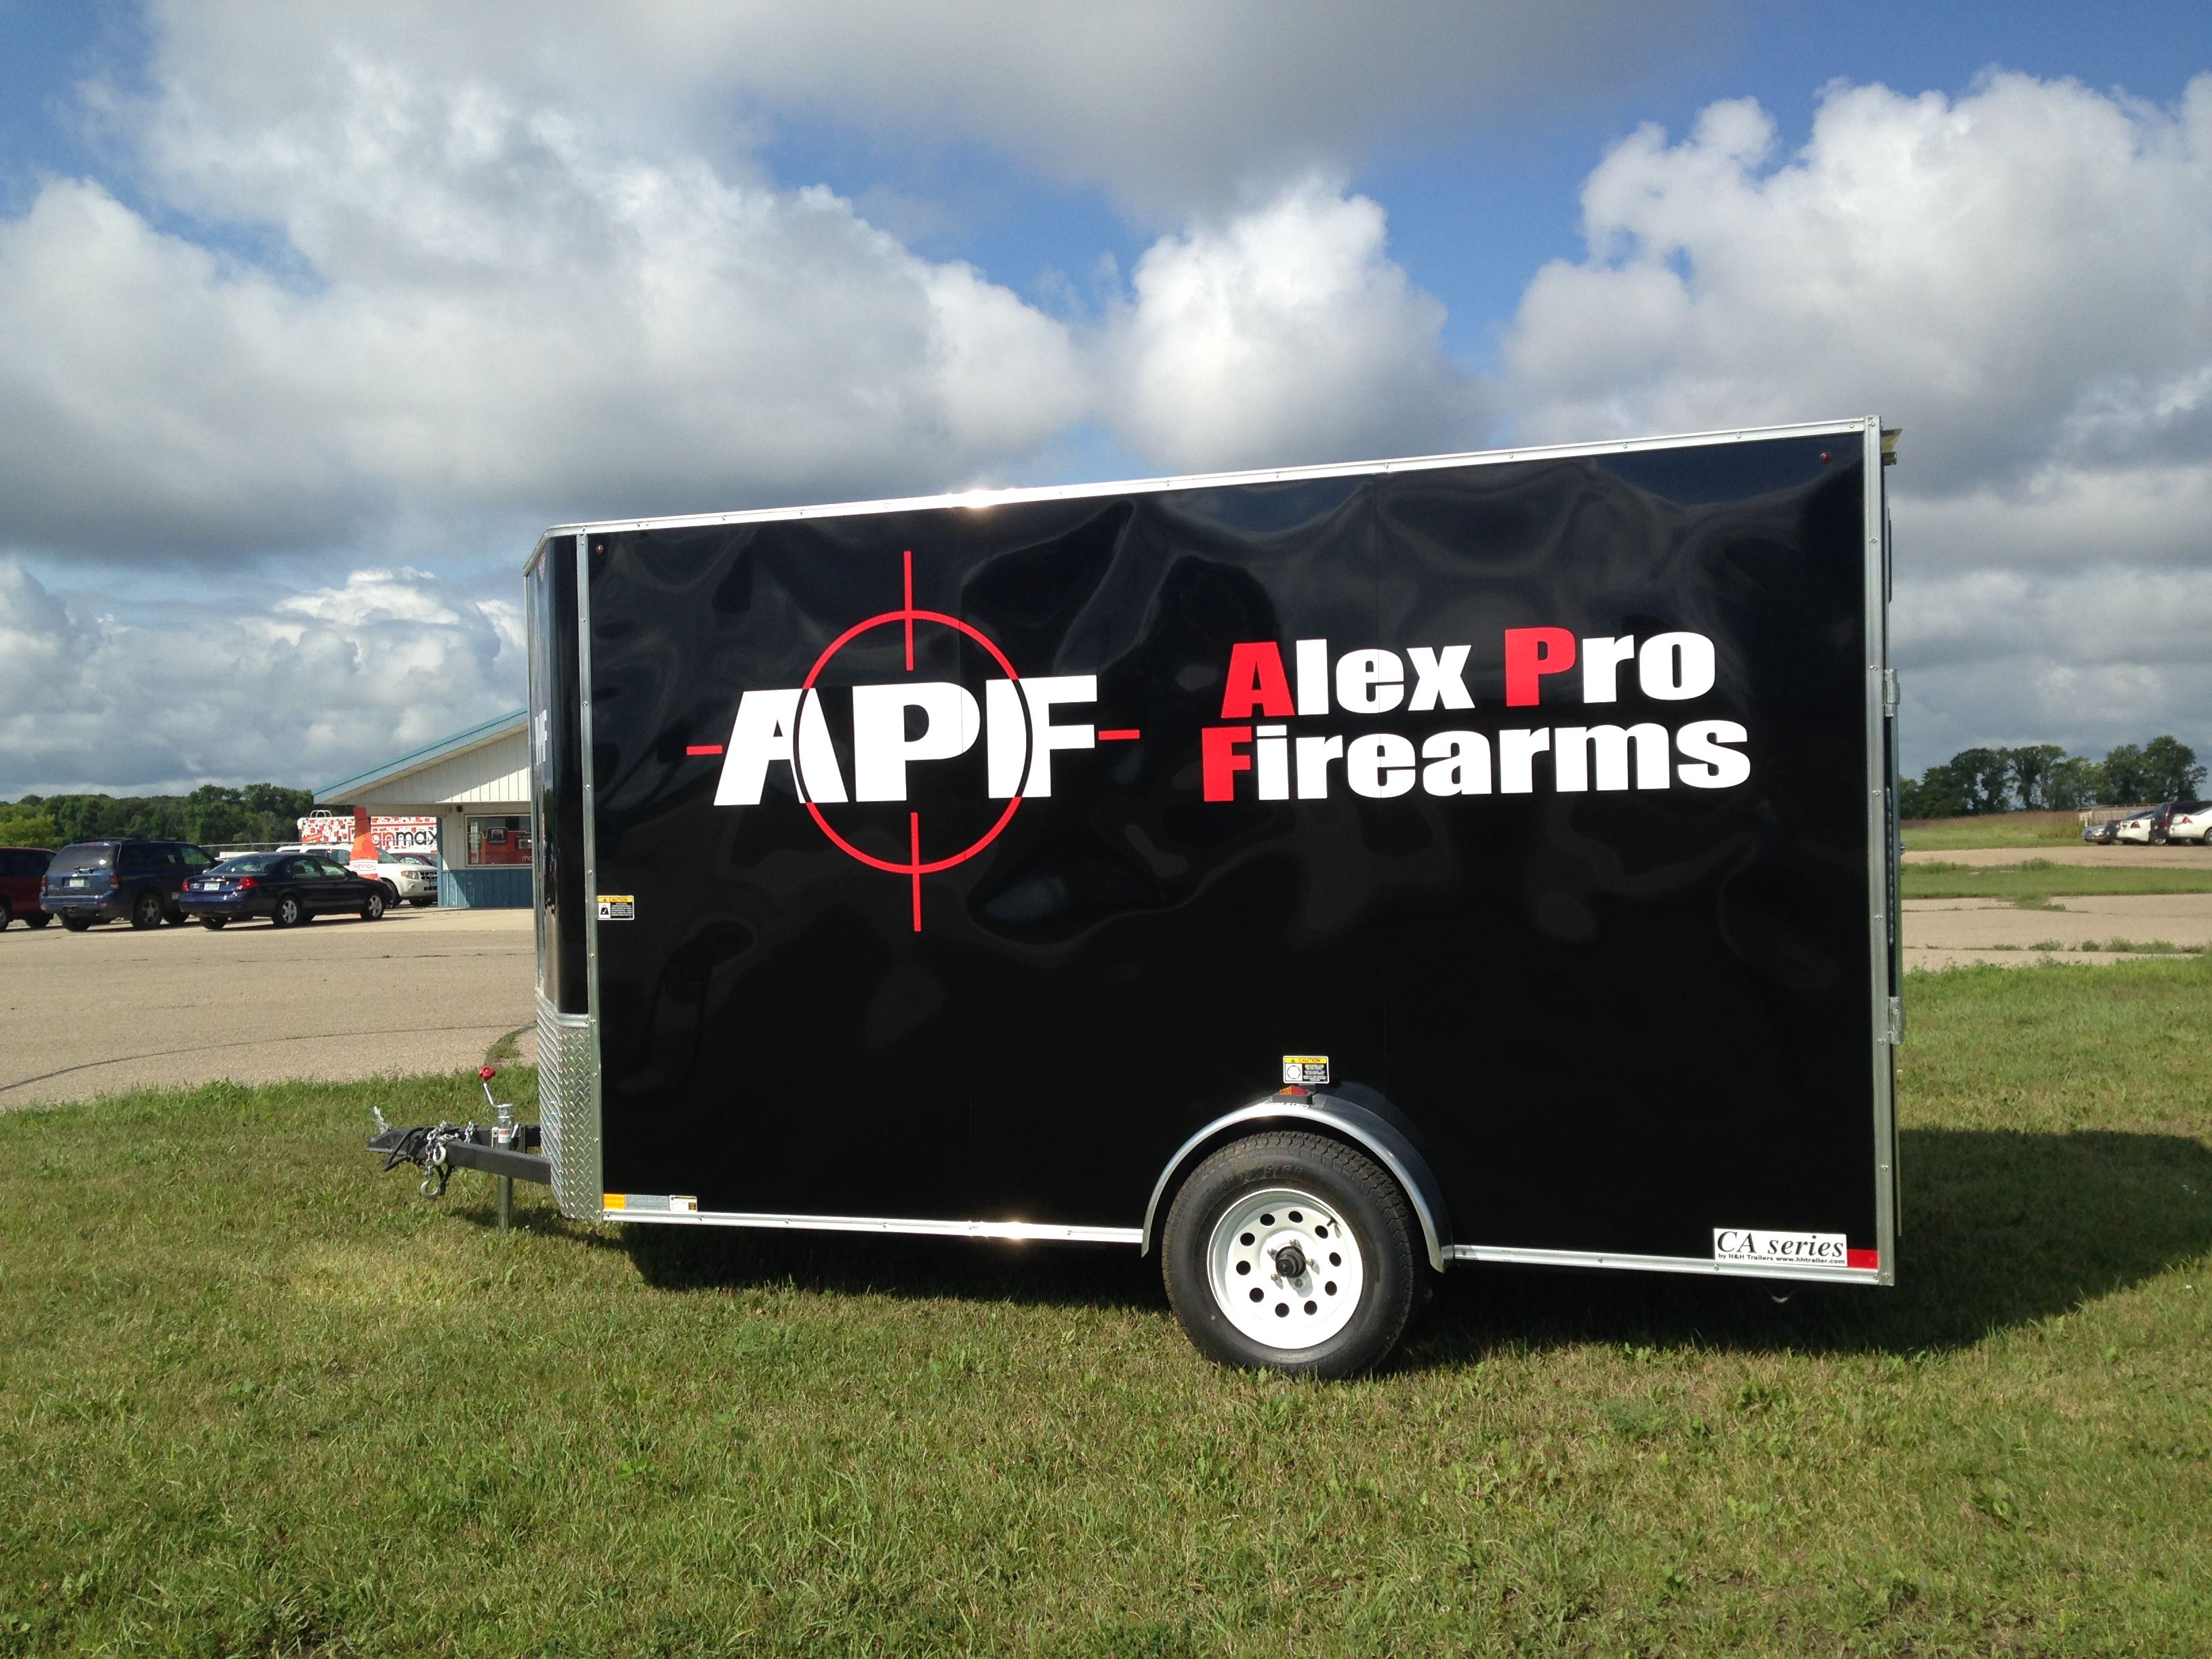 Alex Pro Firearms Trailer Wrap - Printed & Installed by Signmax